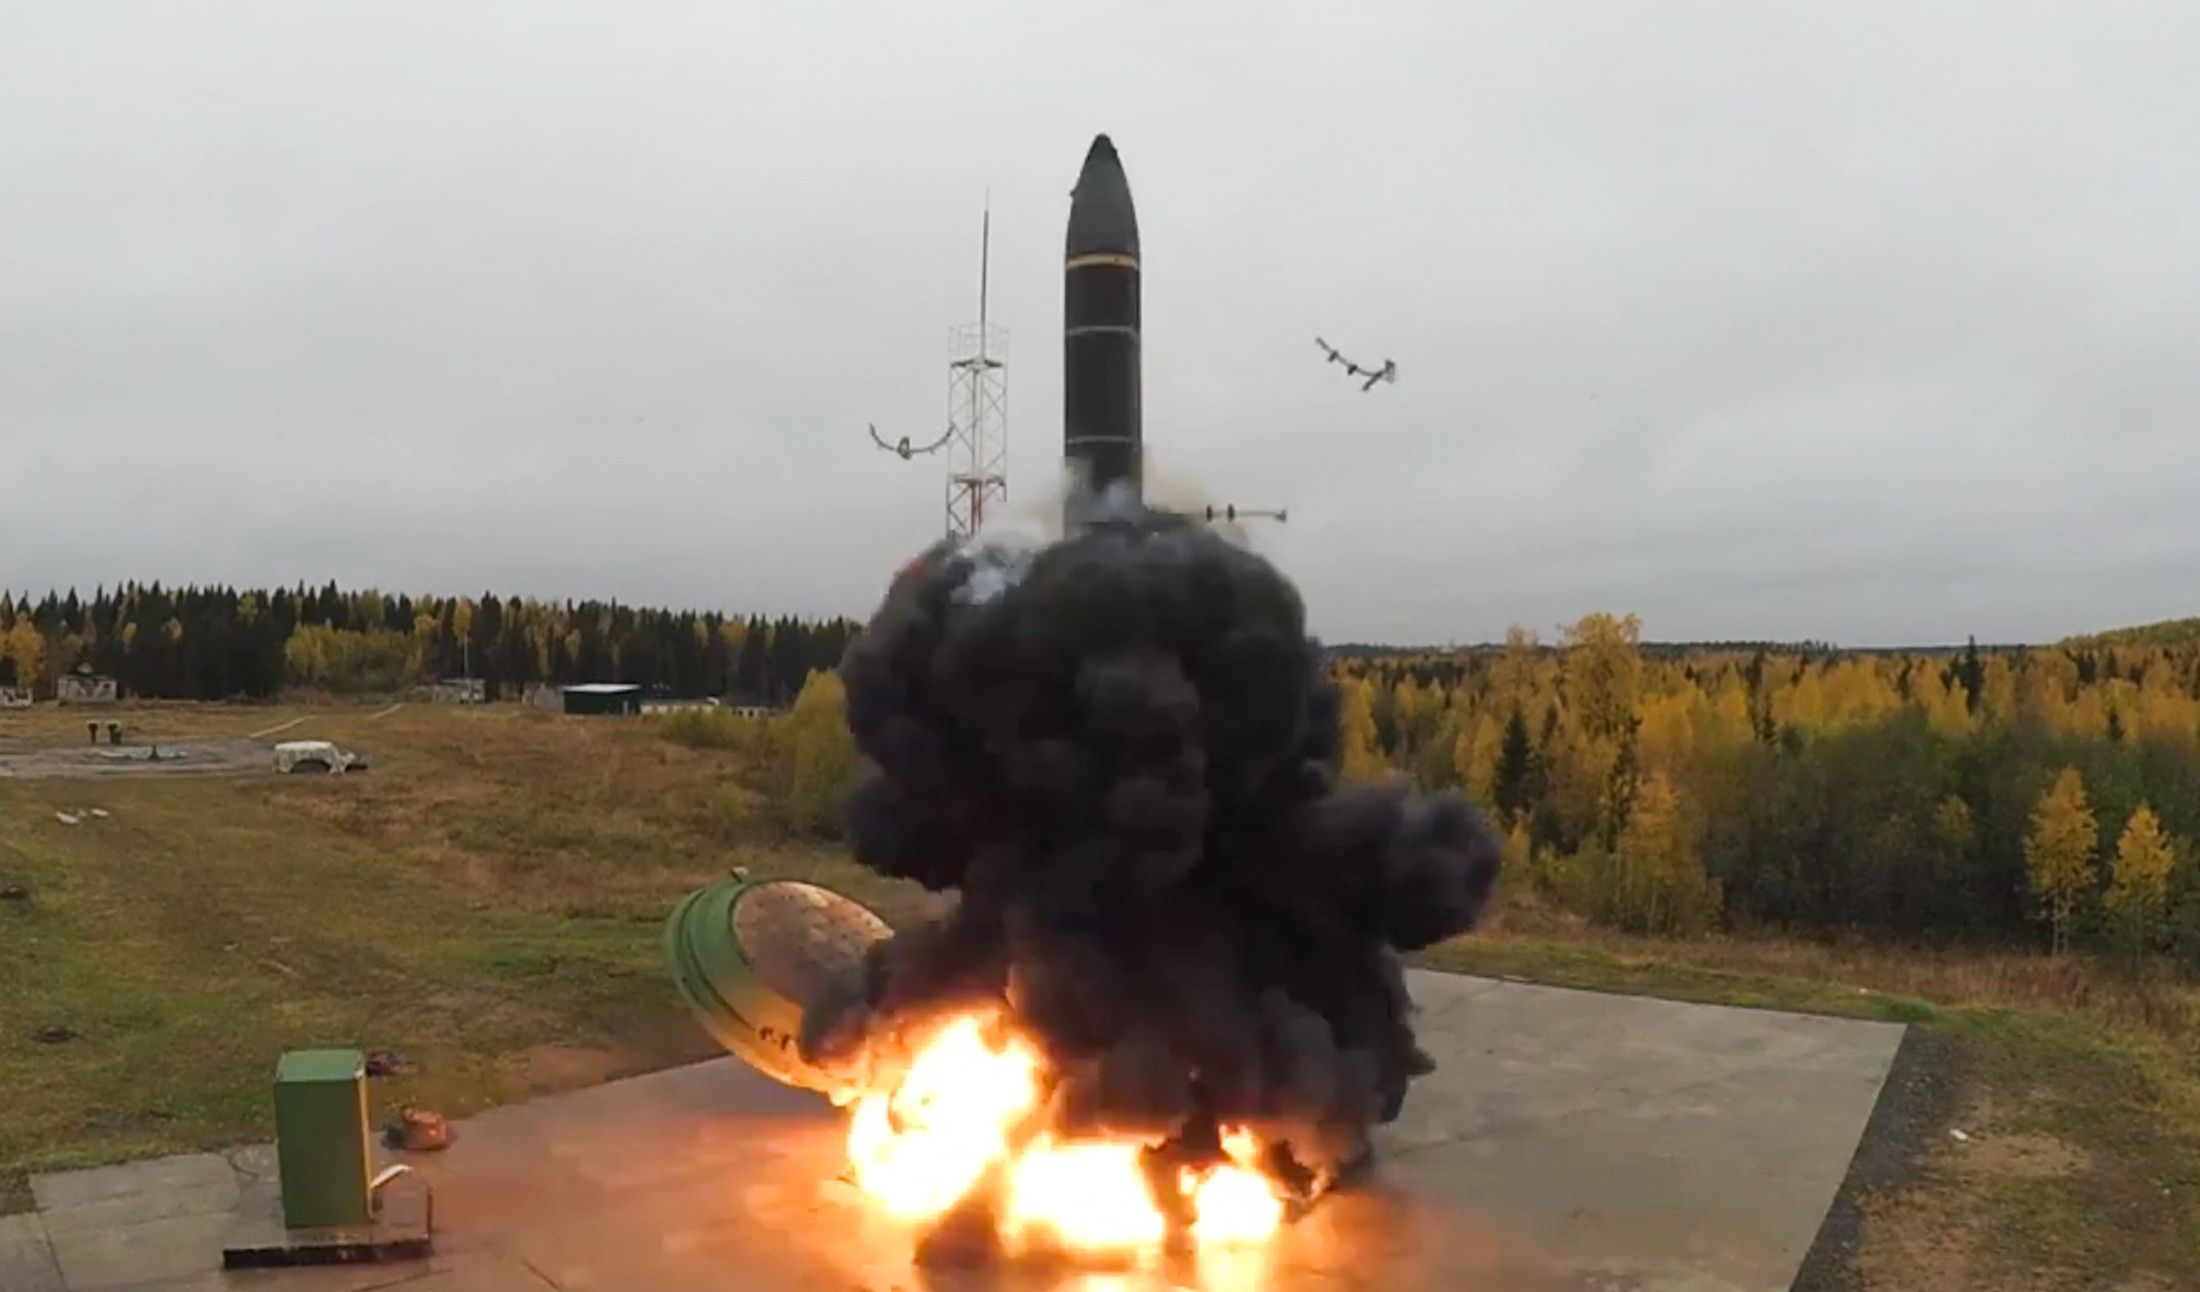 Russia Warns the World: Any Incoming Ballistic Missile Is Considered Nuclear